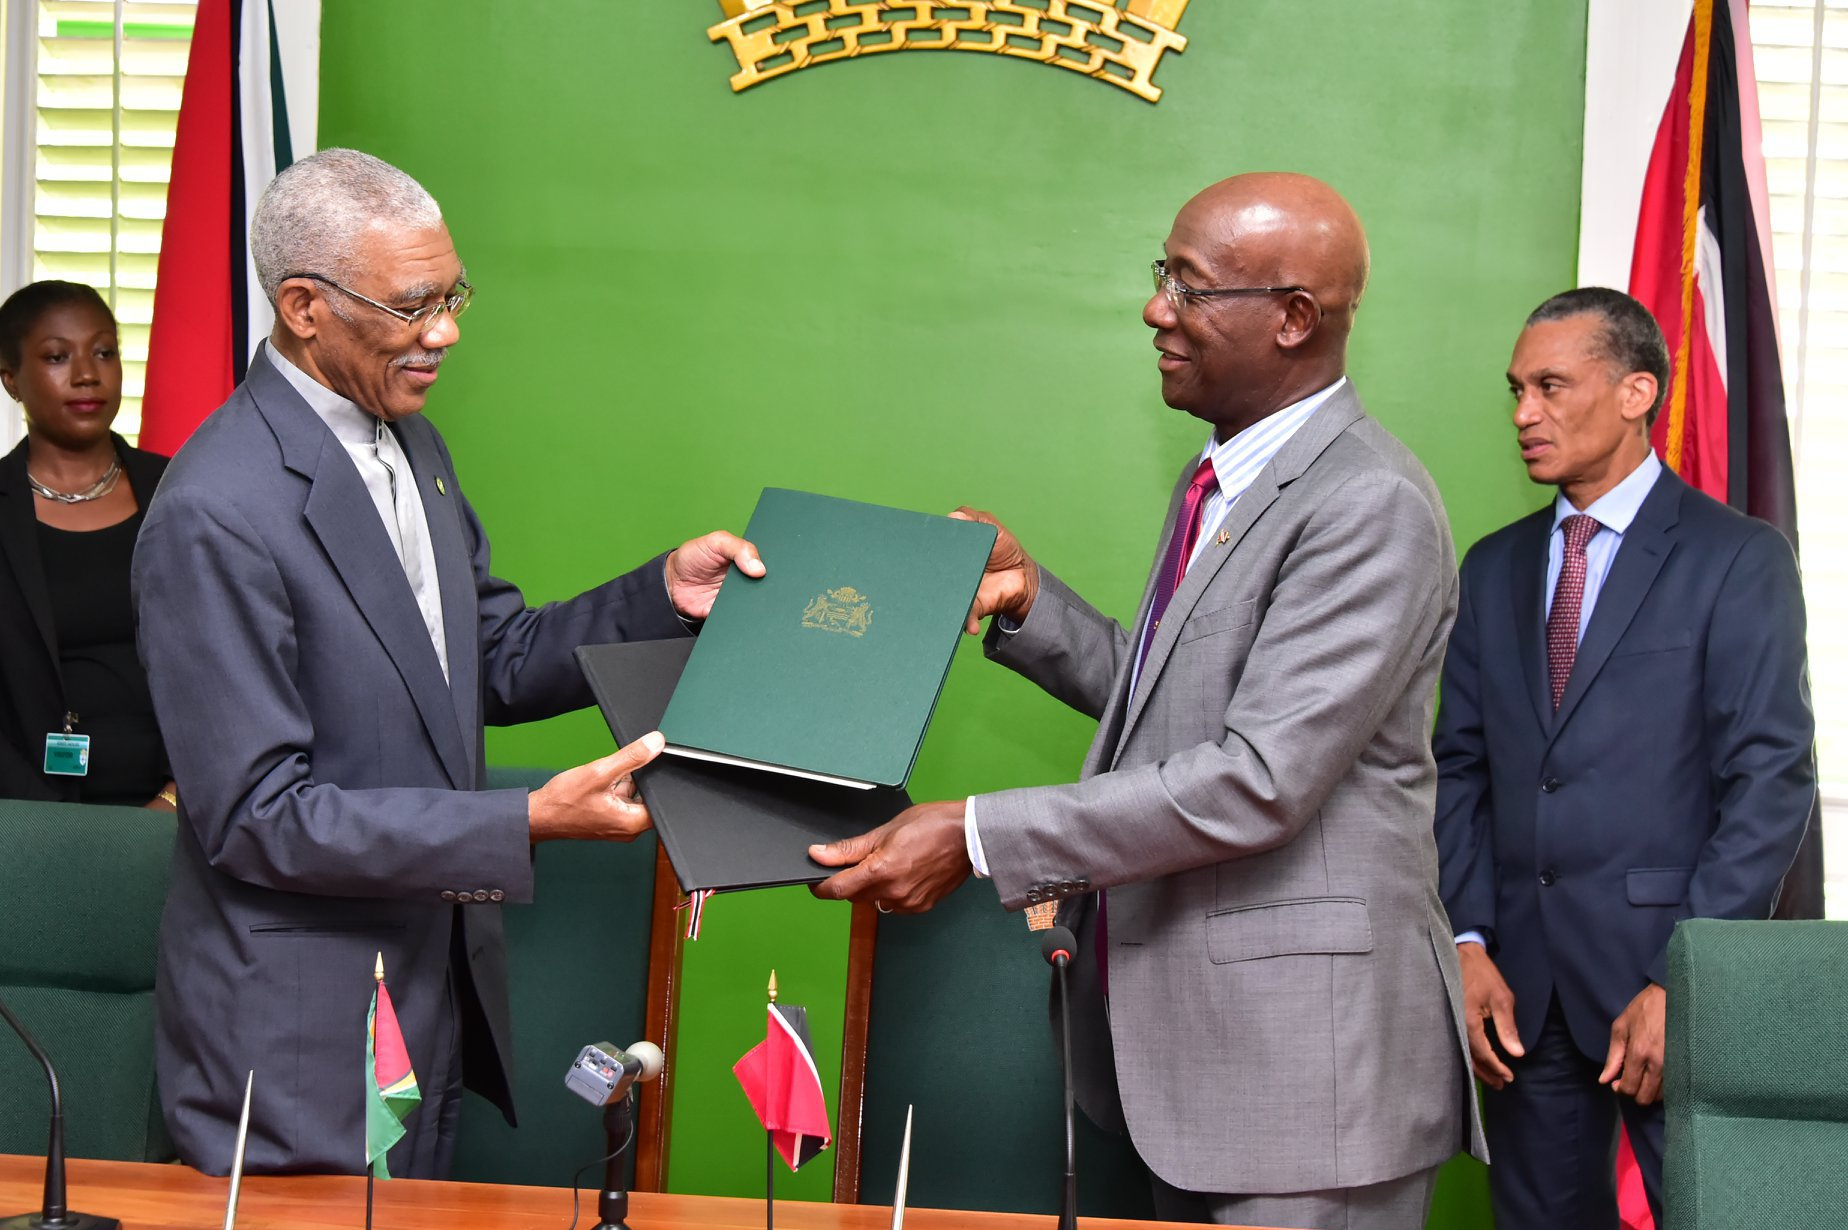 President David Granger and Prime Minister Keith Rowley exchange copies of the MOU (Photo via Ministry of the Presidency)